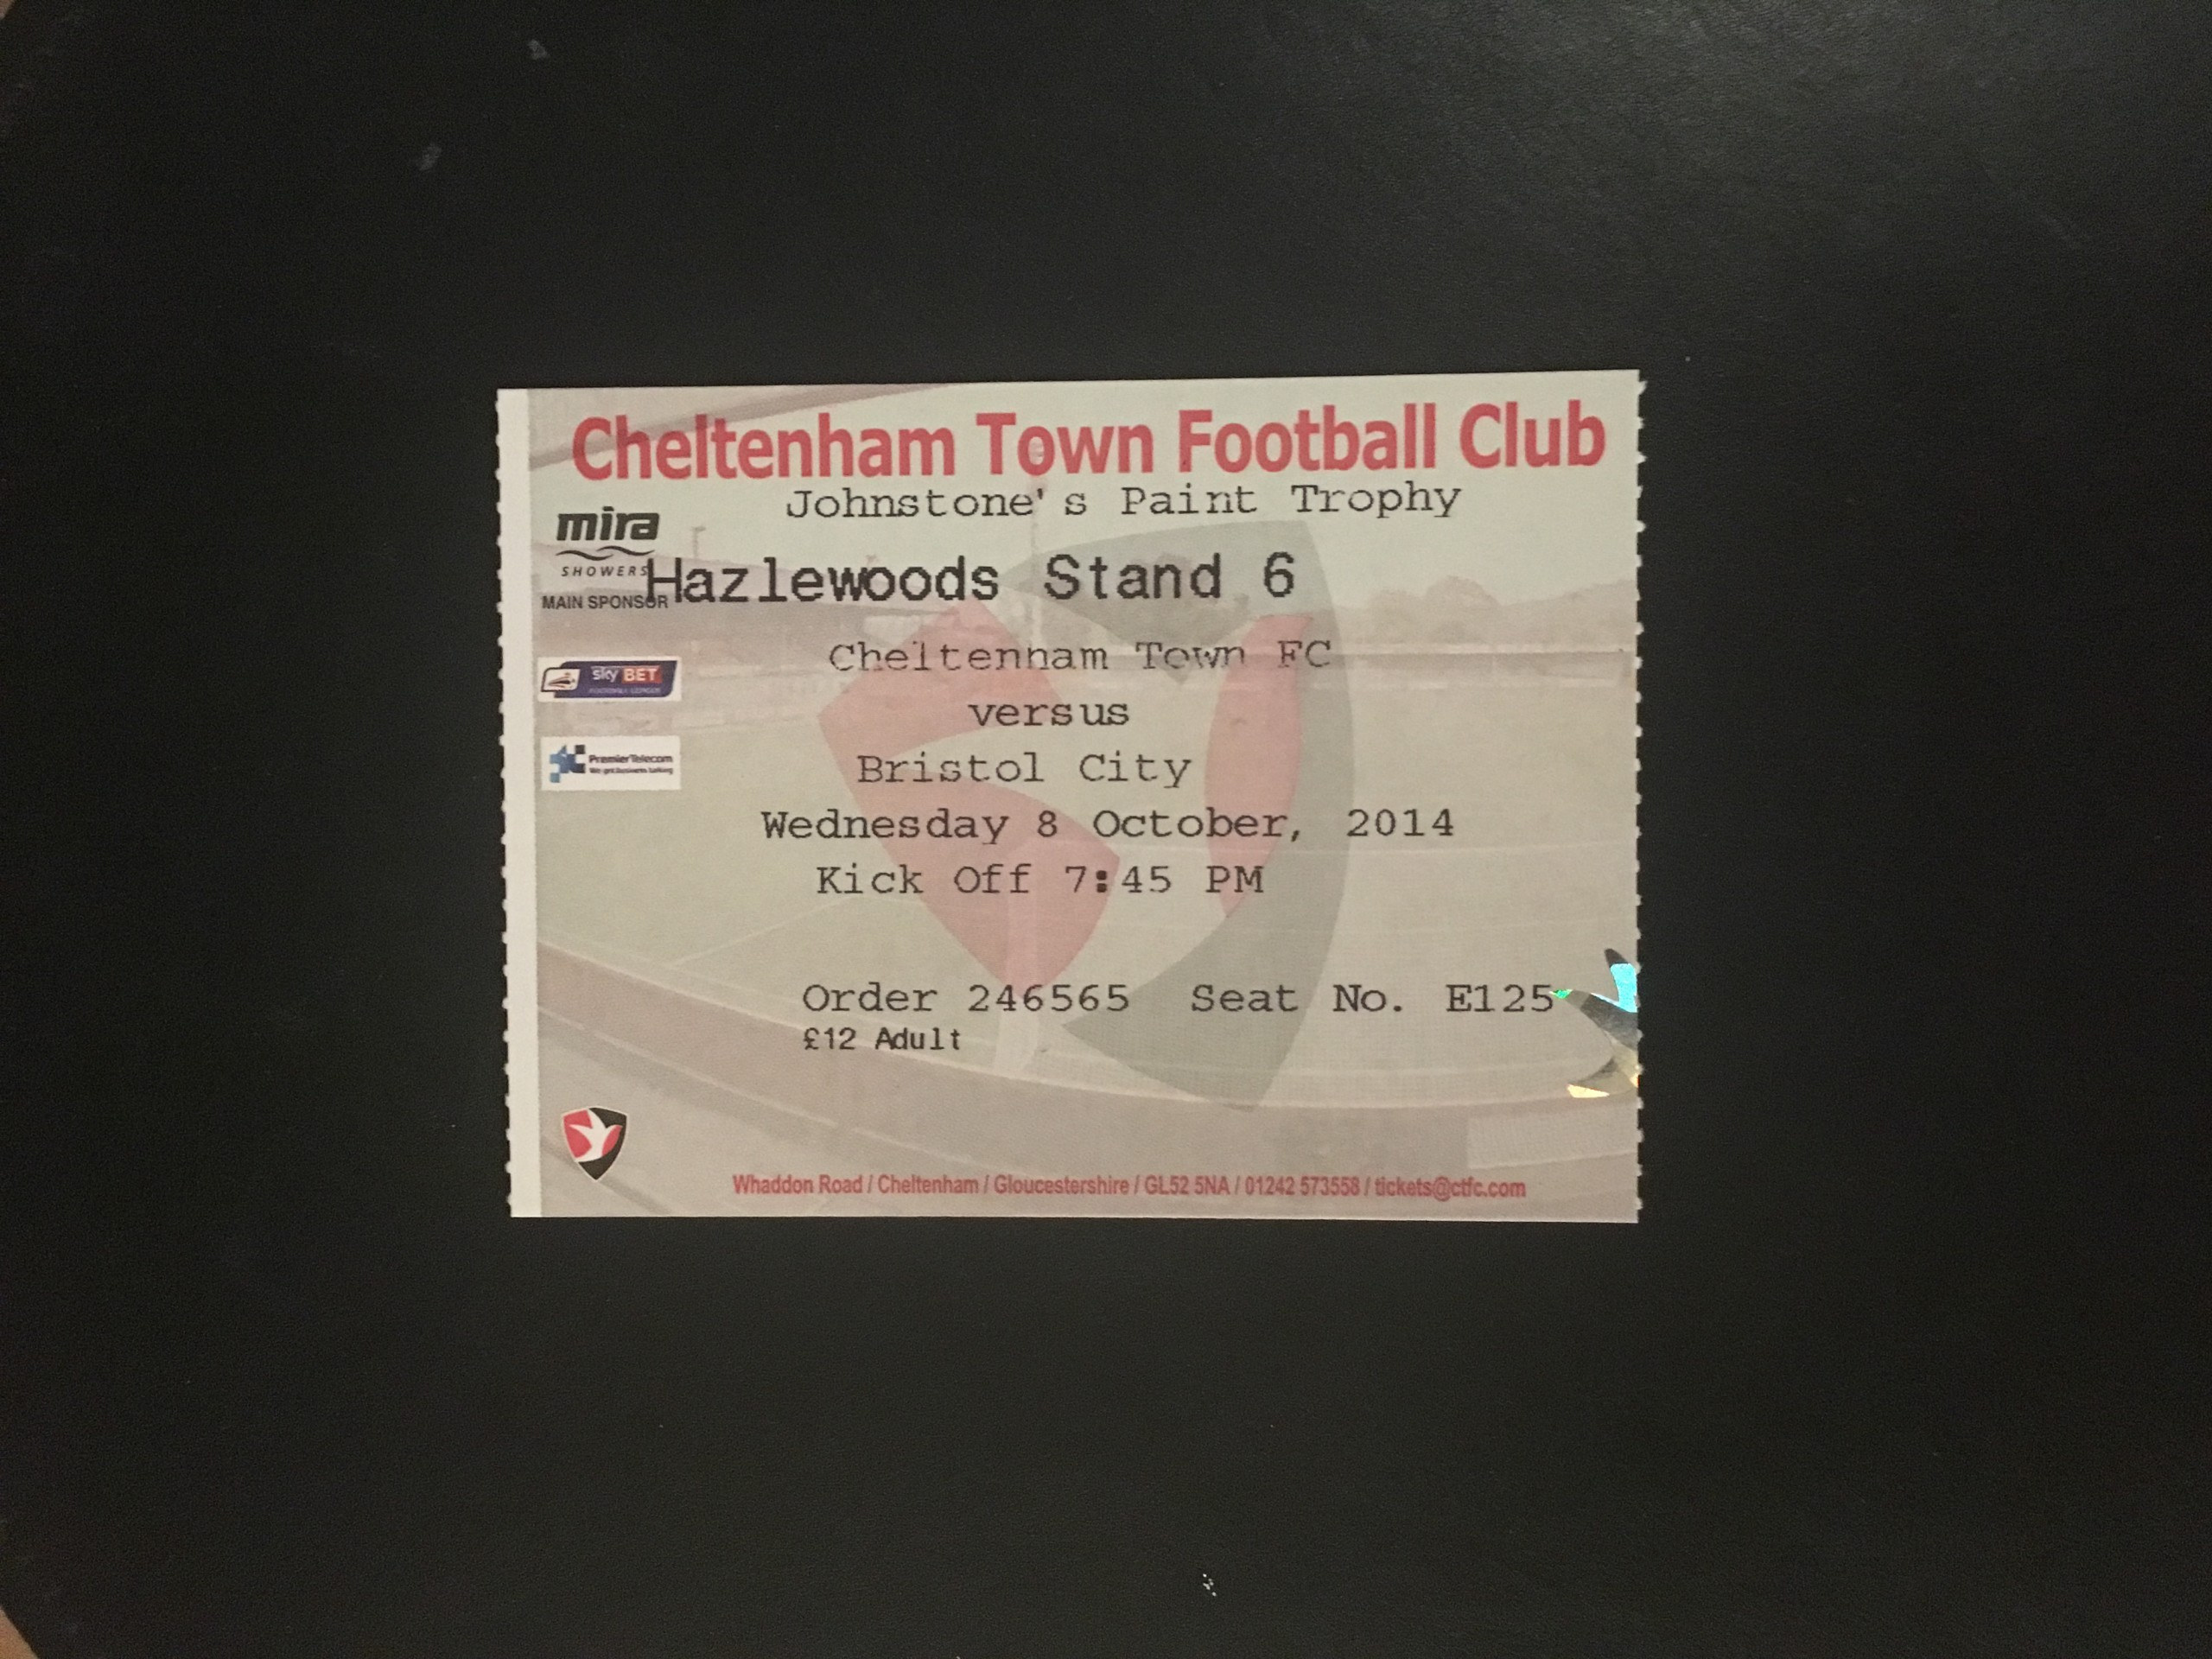 Cheltenham Town v Bristol City 08-10-2014 Ticket